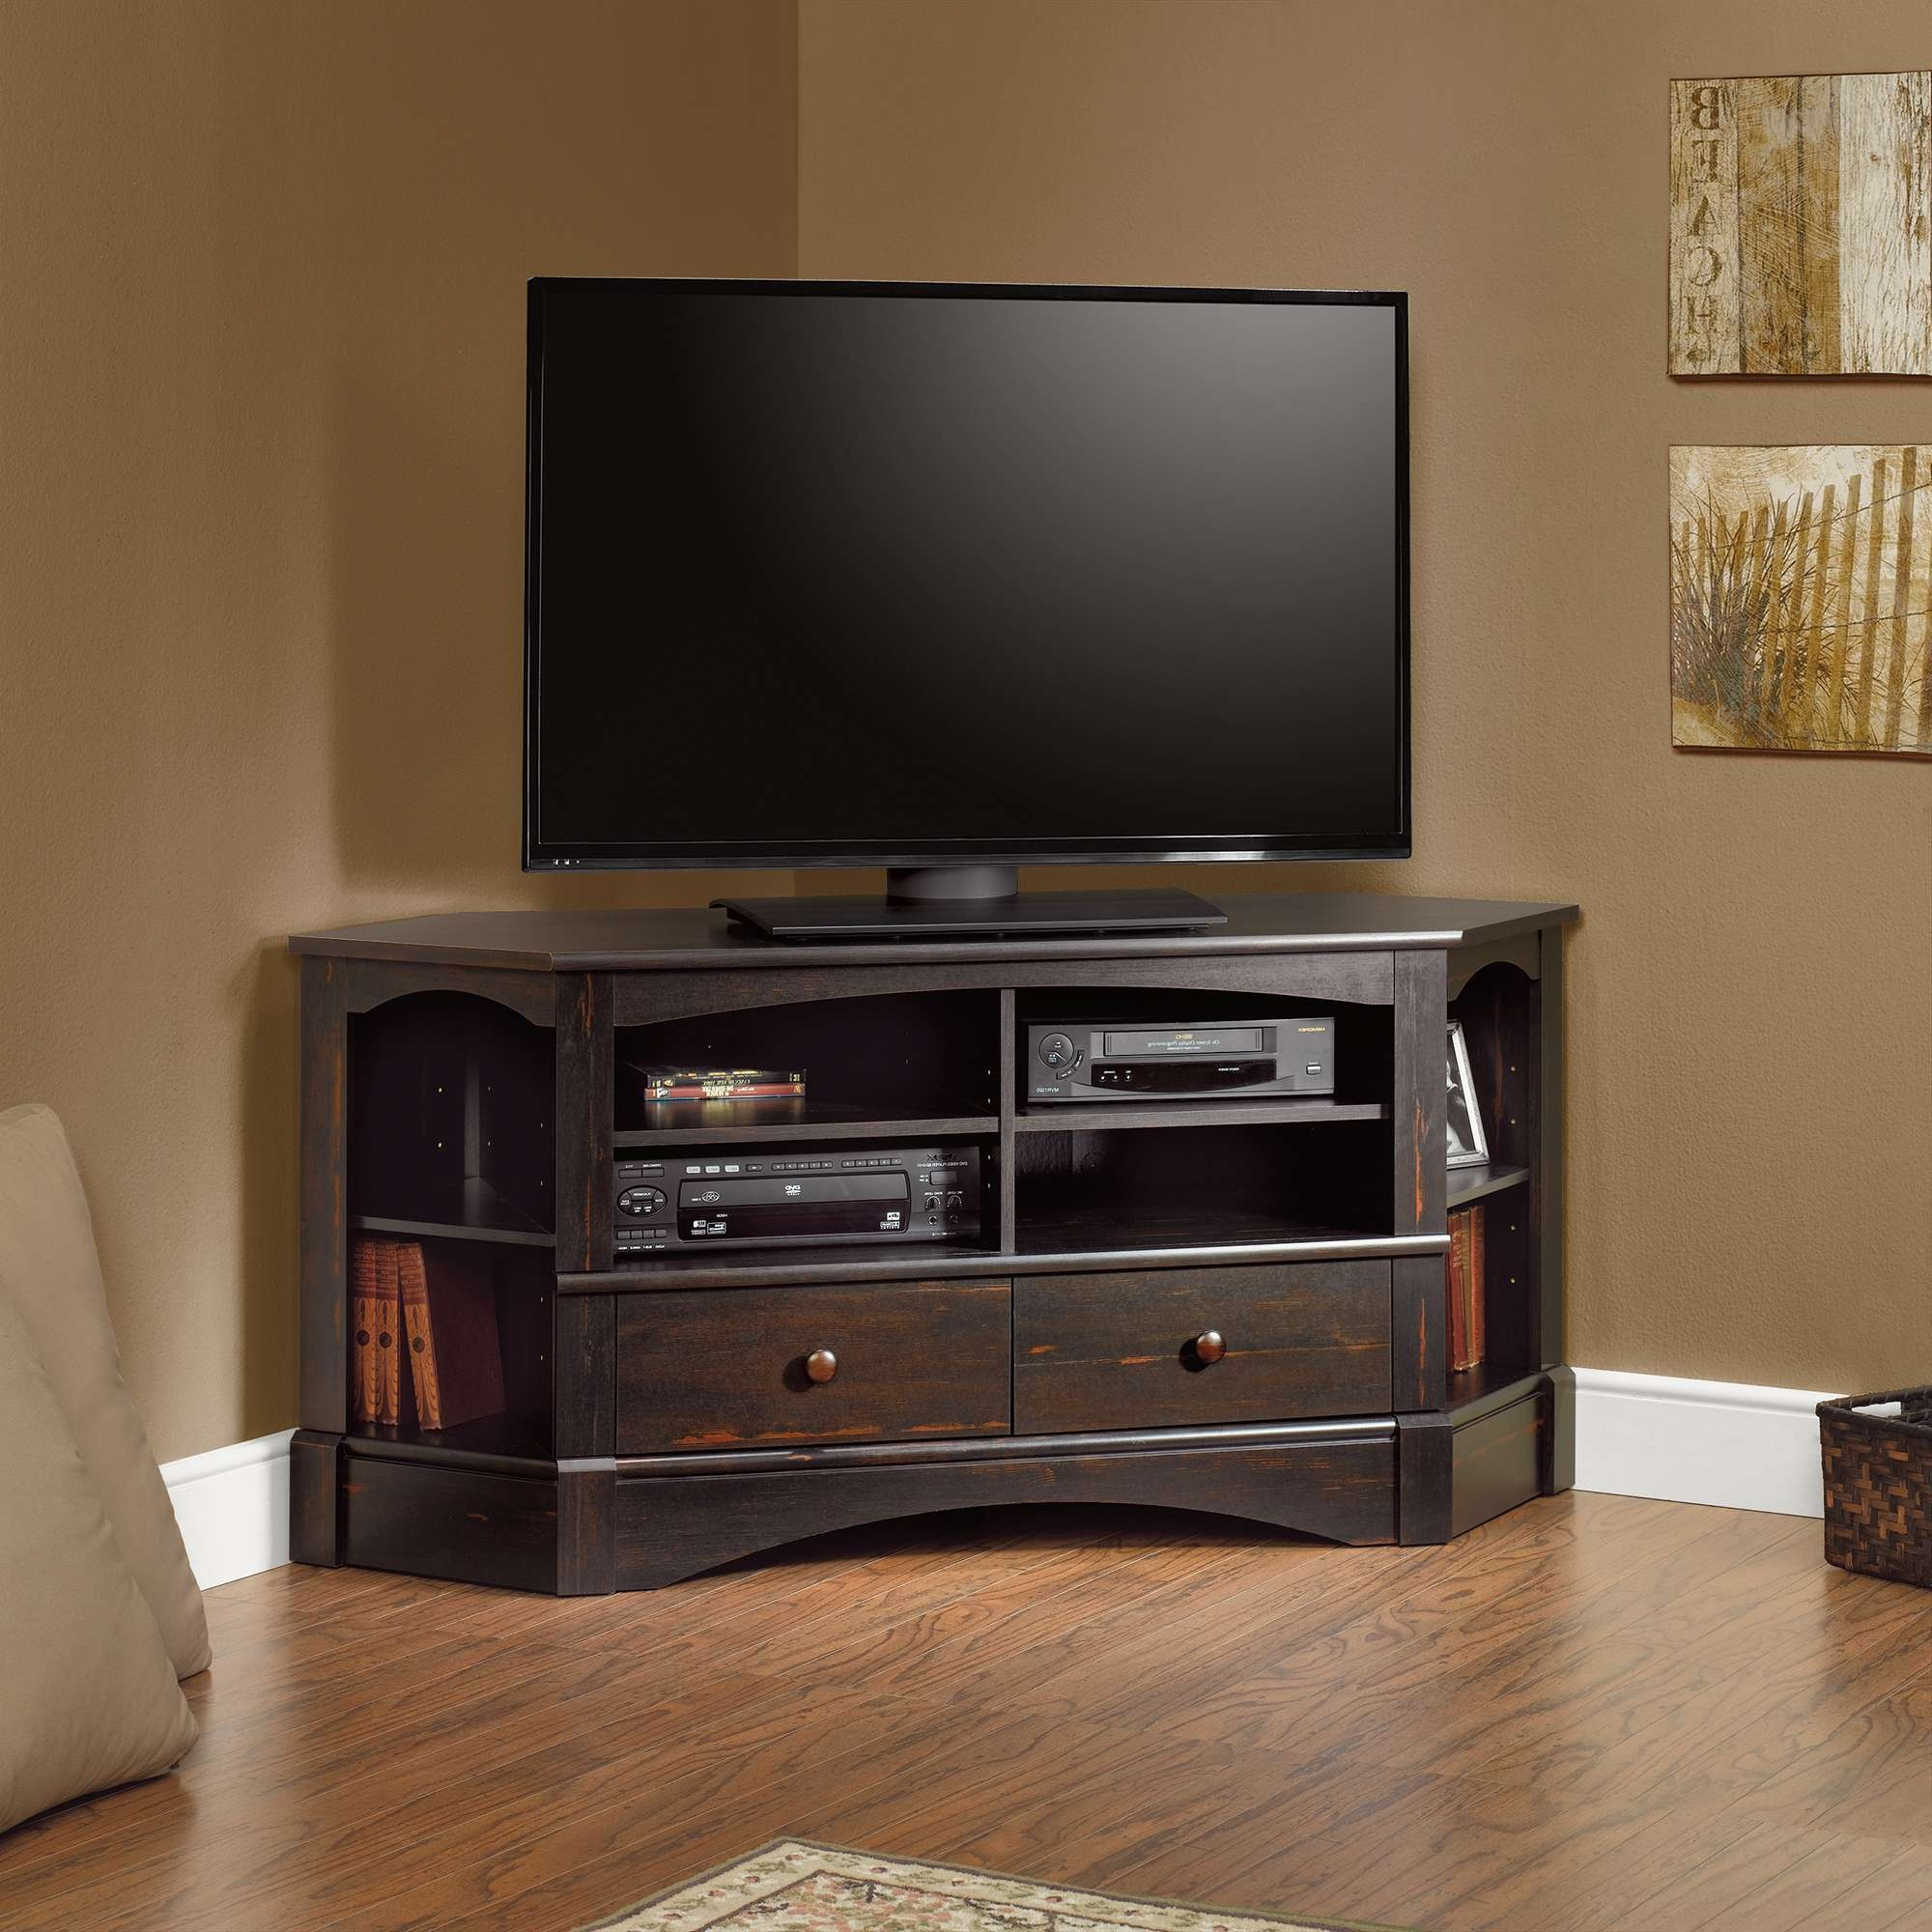 Harbor View   Corner Entertainment Credenza   402902   Sauder For Glass Corner Tv Stands For Flat Screen Tvs (View 12 of 15)